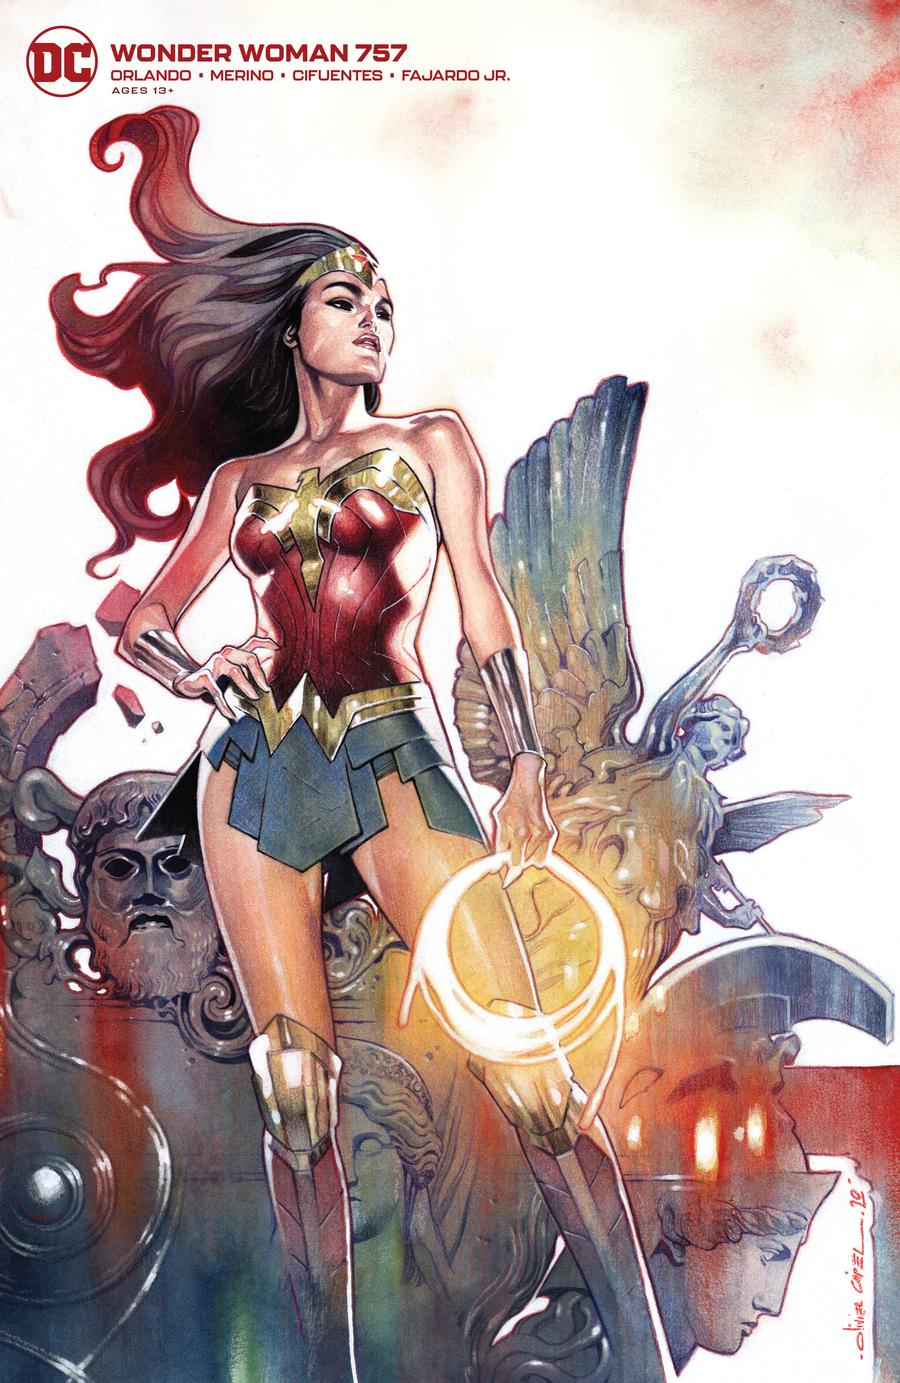 Wonder Woman Vol 5 #757 Cover B Variant Olivier Coipel Card Stock Cover